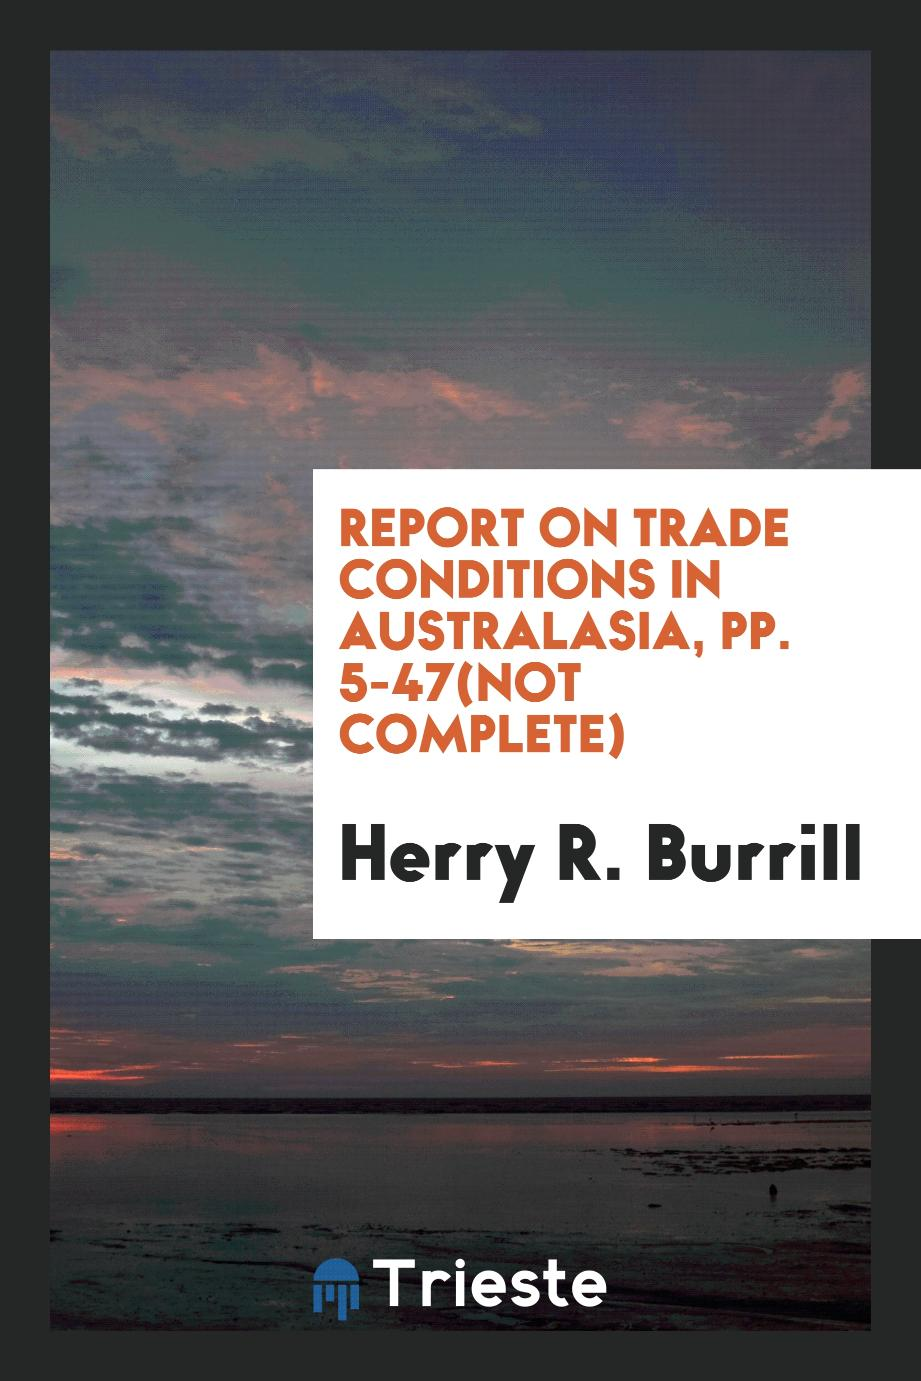 Report on trade conditions in Australasia, pp. 5-47(not complete)